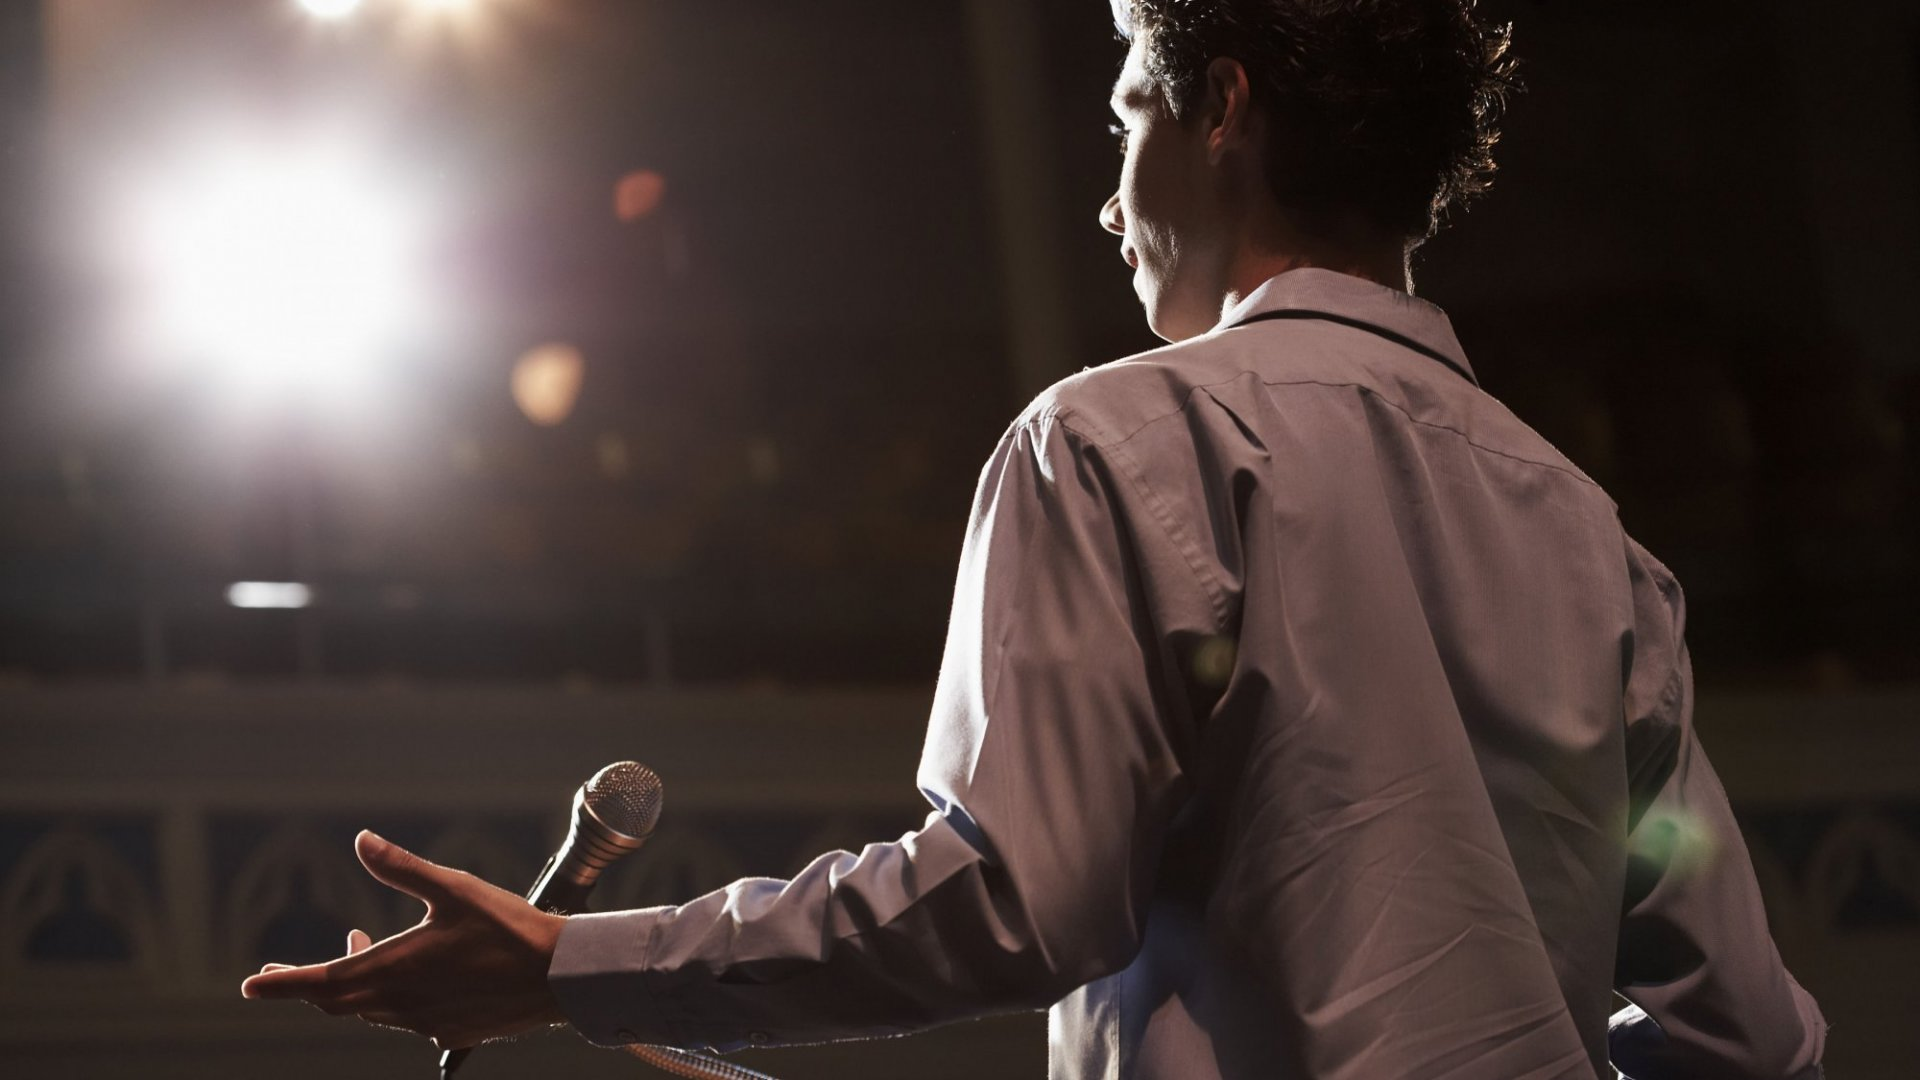 Want to Give a TED Talk One Day? Take These Tips From a Master